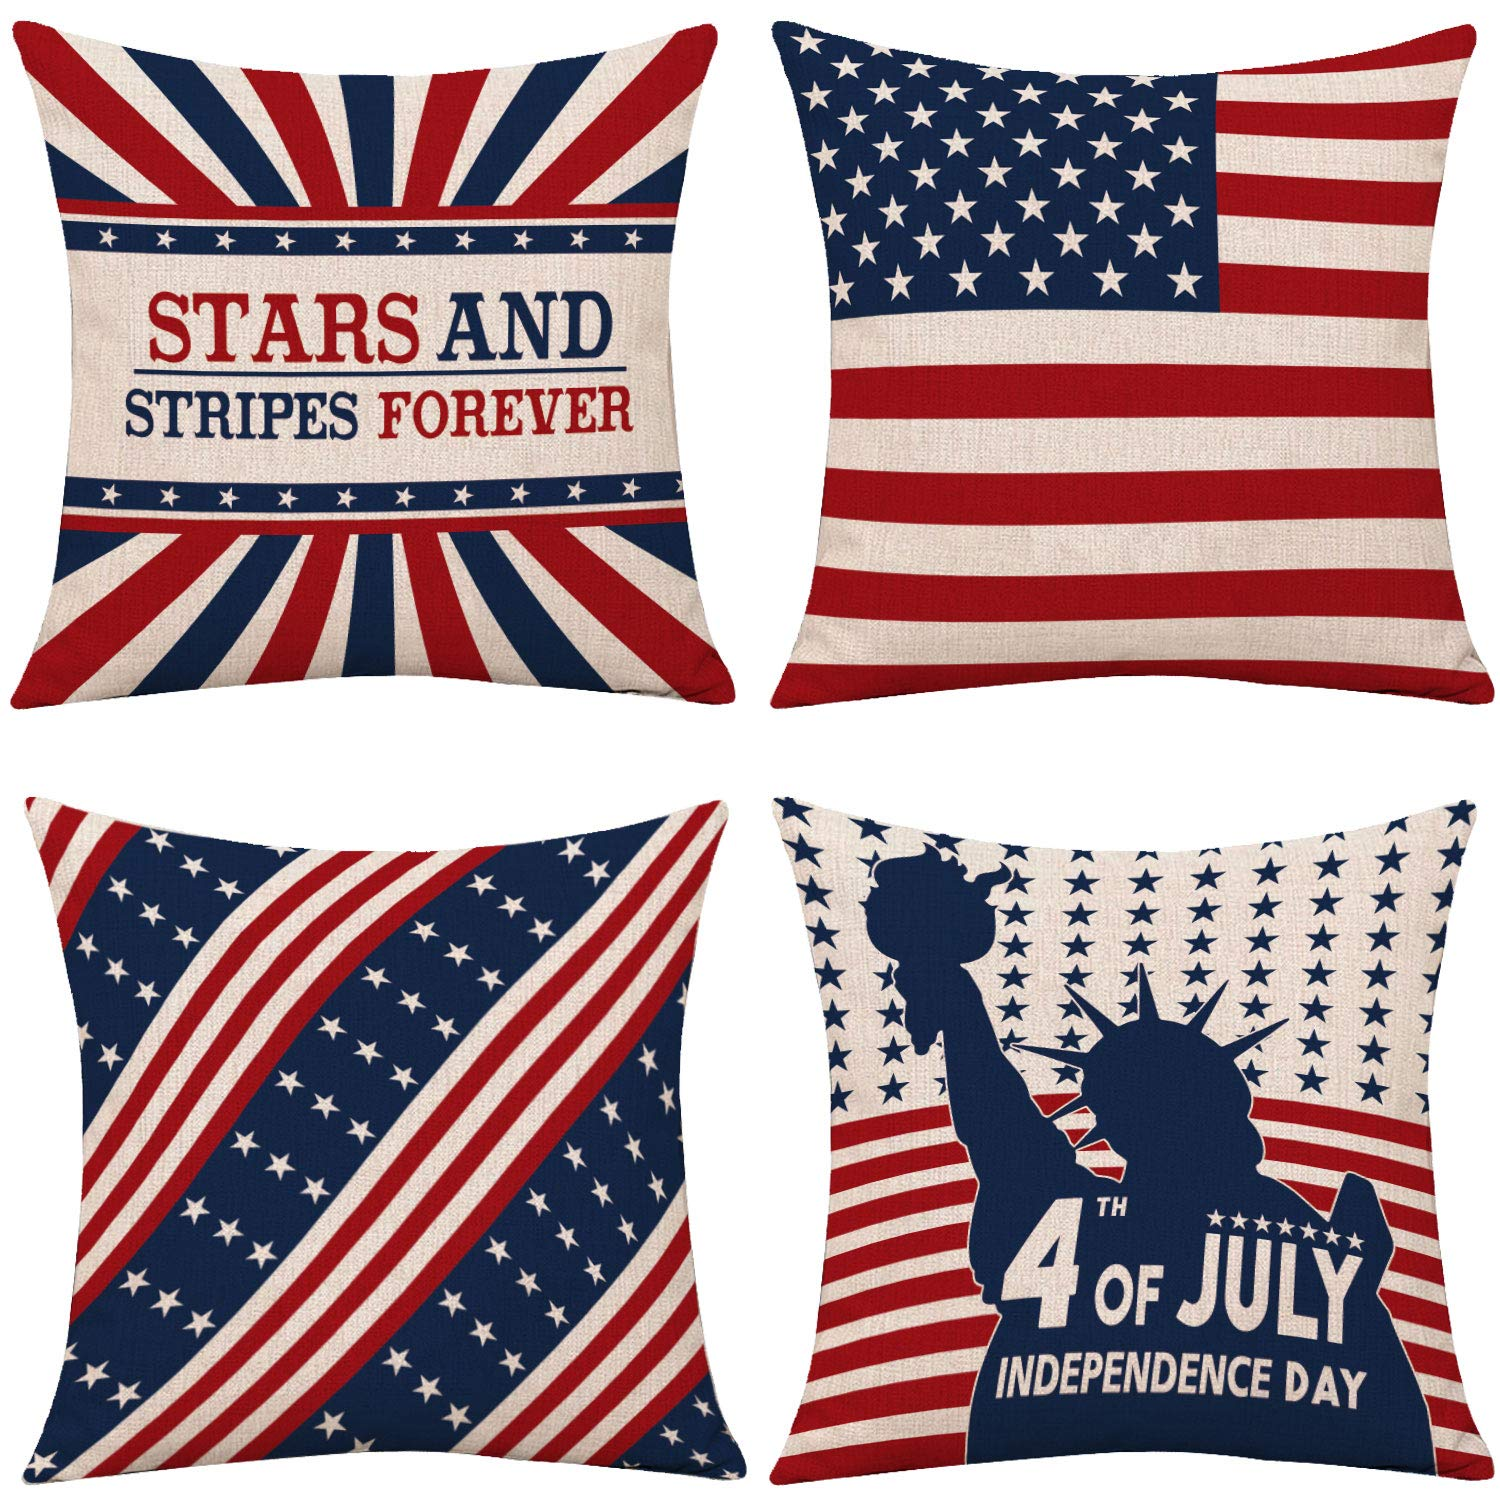 "Whaline 4th of July Pillow Cover, Patriotic Throw Cushion Cover, American Flag Pillow Case, Independence Day Cushion Case for Sofa, Couch, Bedroom Home Decoration, 4 Pieces (16"" x 16"")"